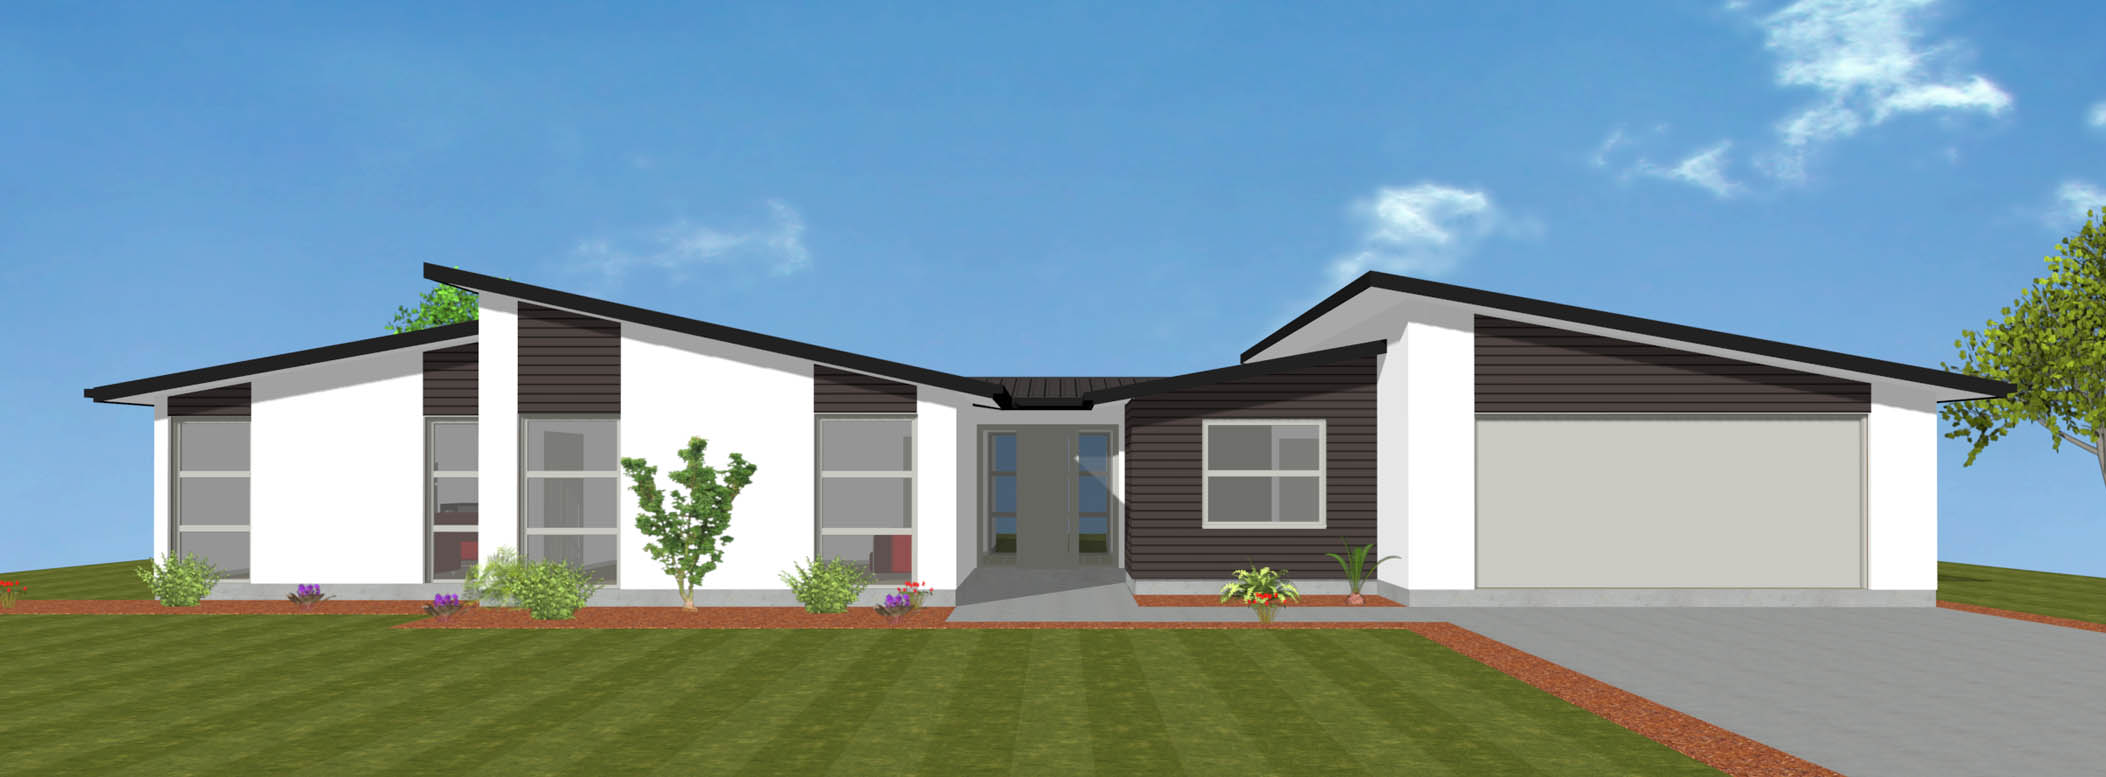 Sunline new house plan and design wellington kapiti for Wellington house designs